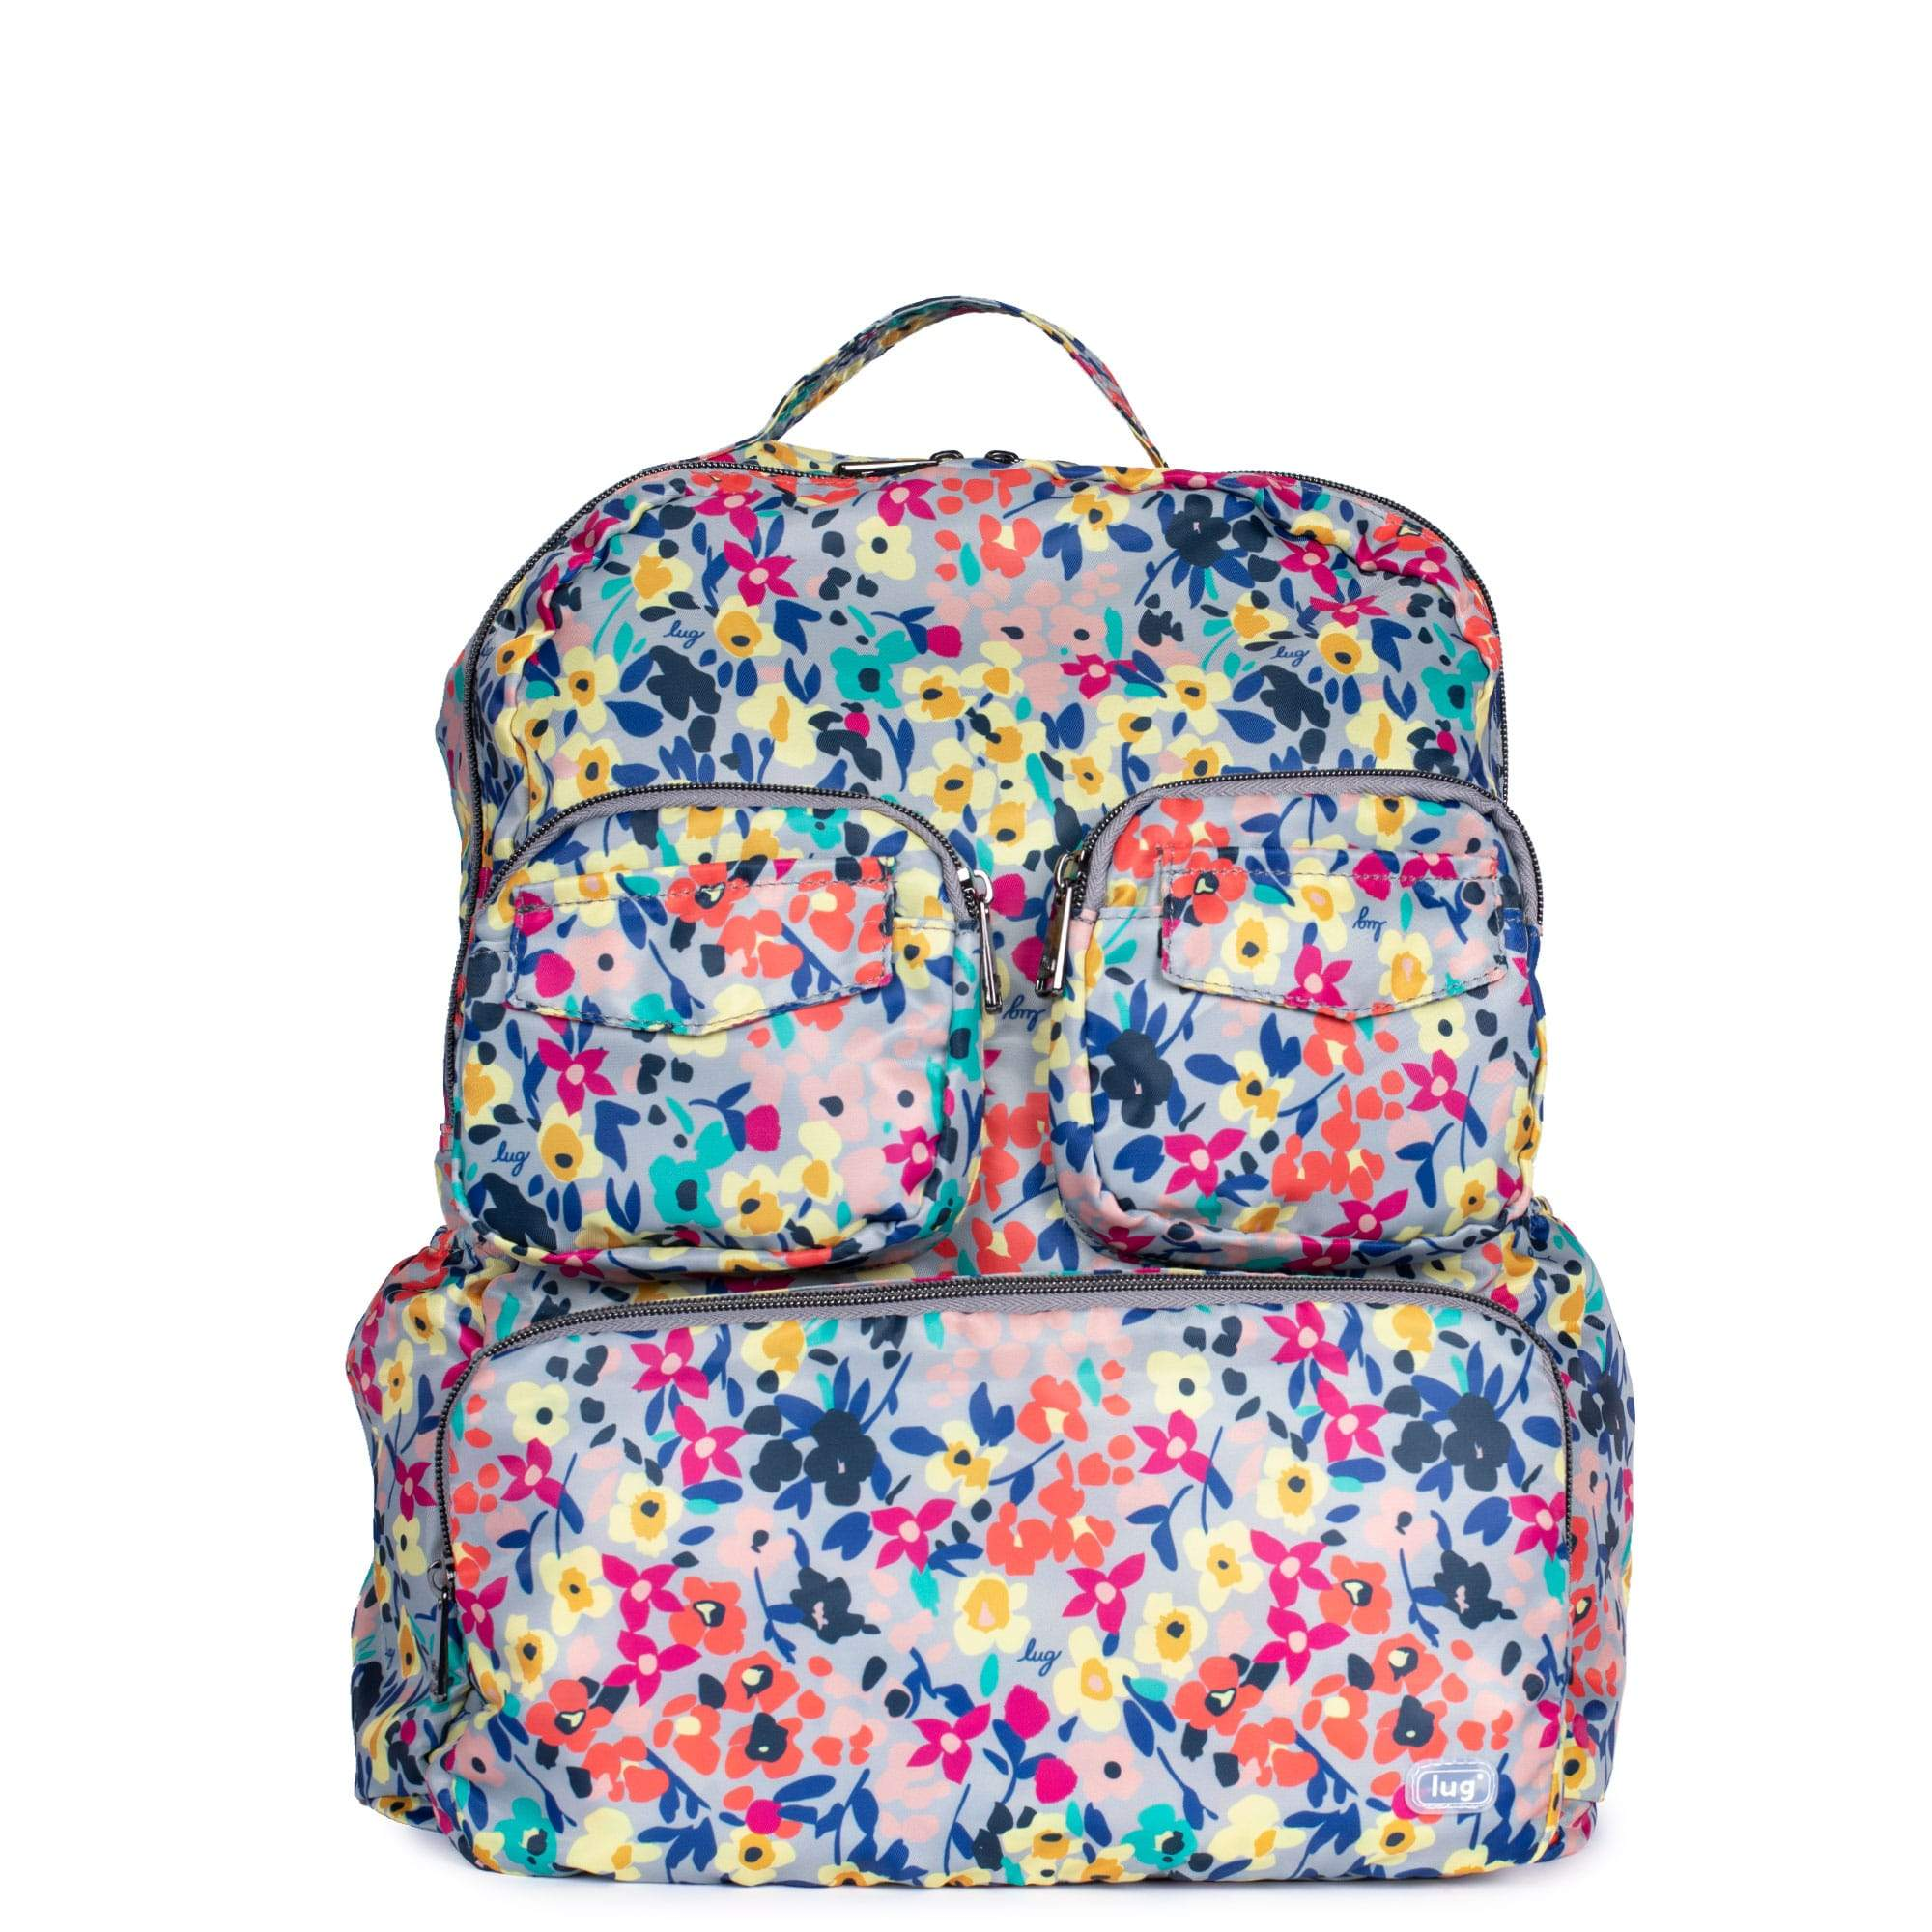 LUG- Puddle Jumper Wildflower Packable Backpack